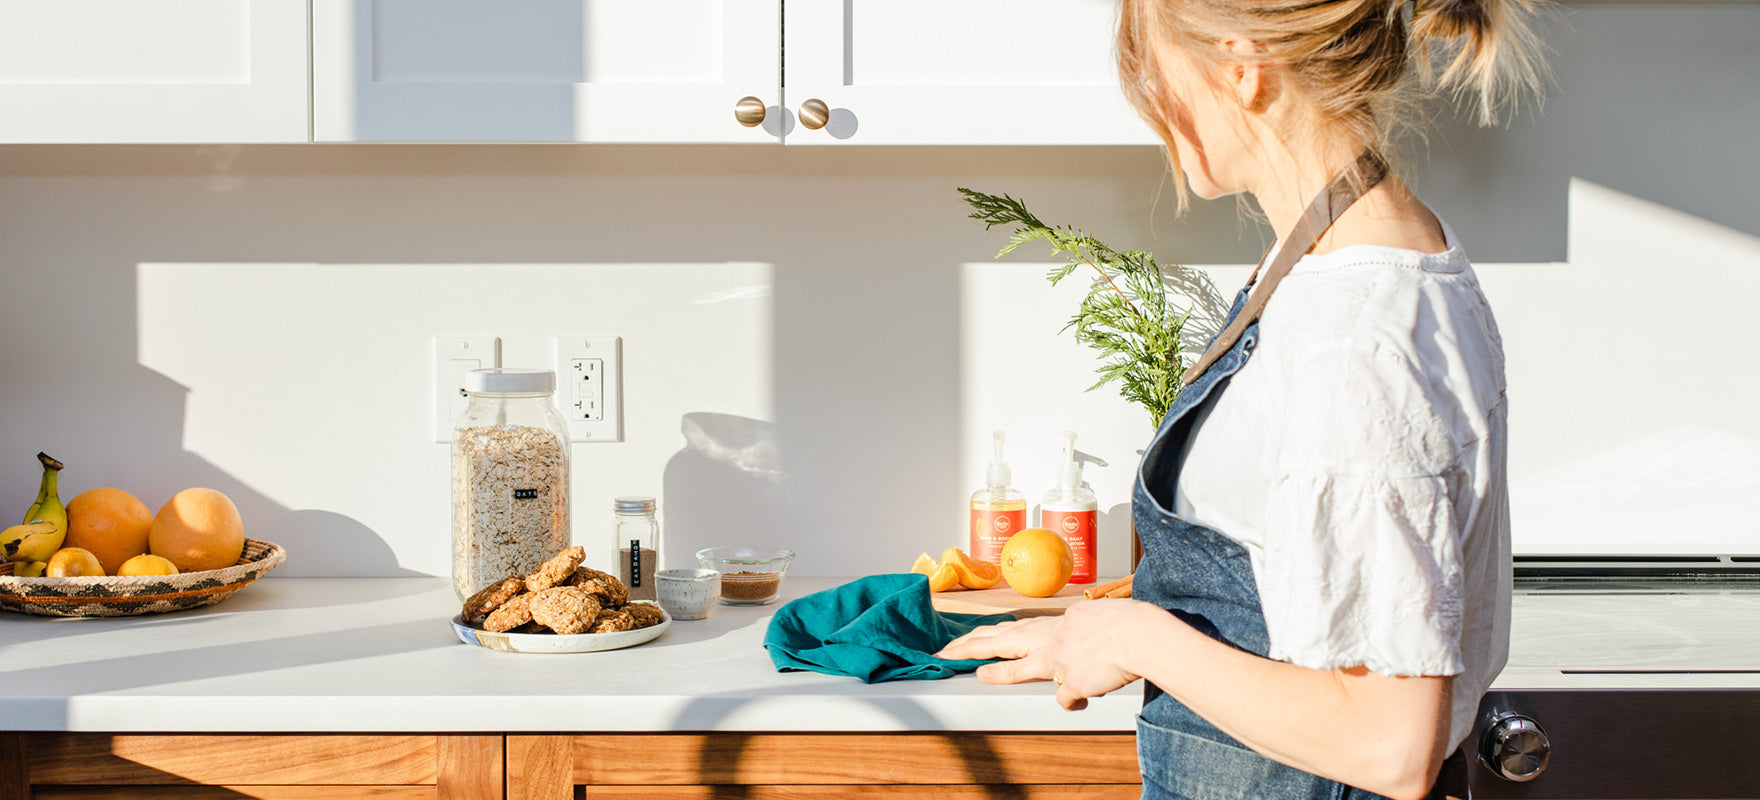 A woman is wiping her counter, getting her home ready for the holidays with all natural Rocky Mountain Soap products and inspiration from Marie Kondo.